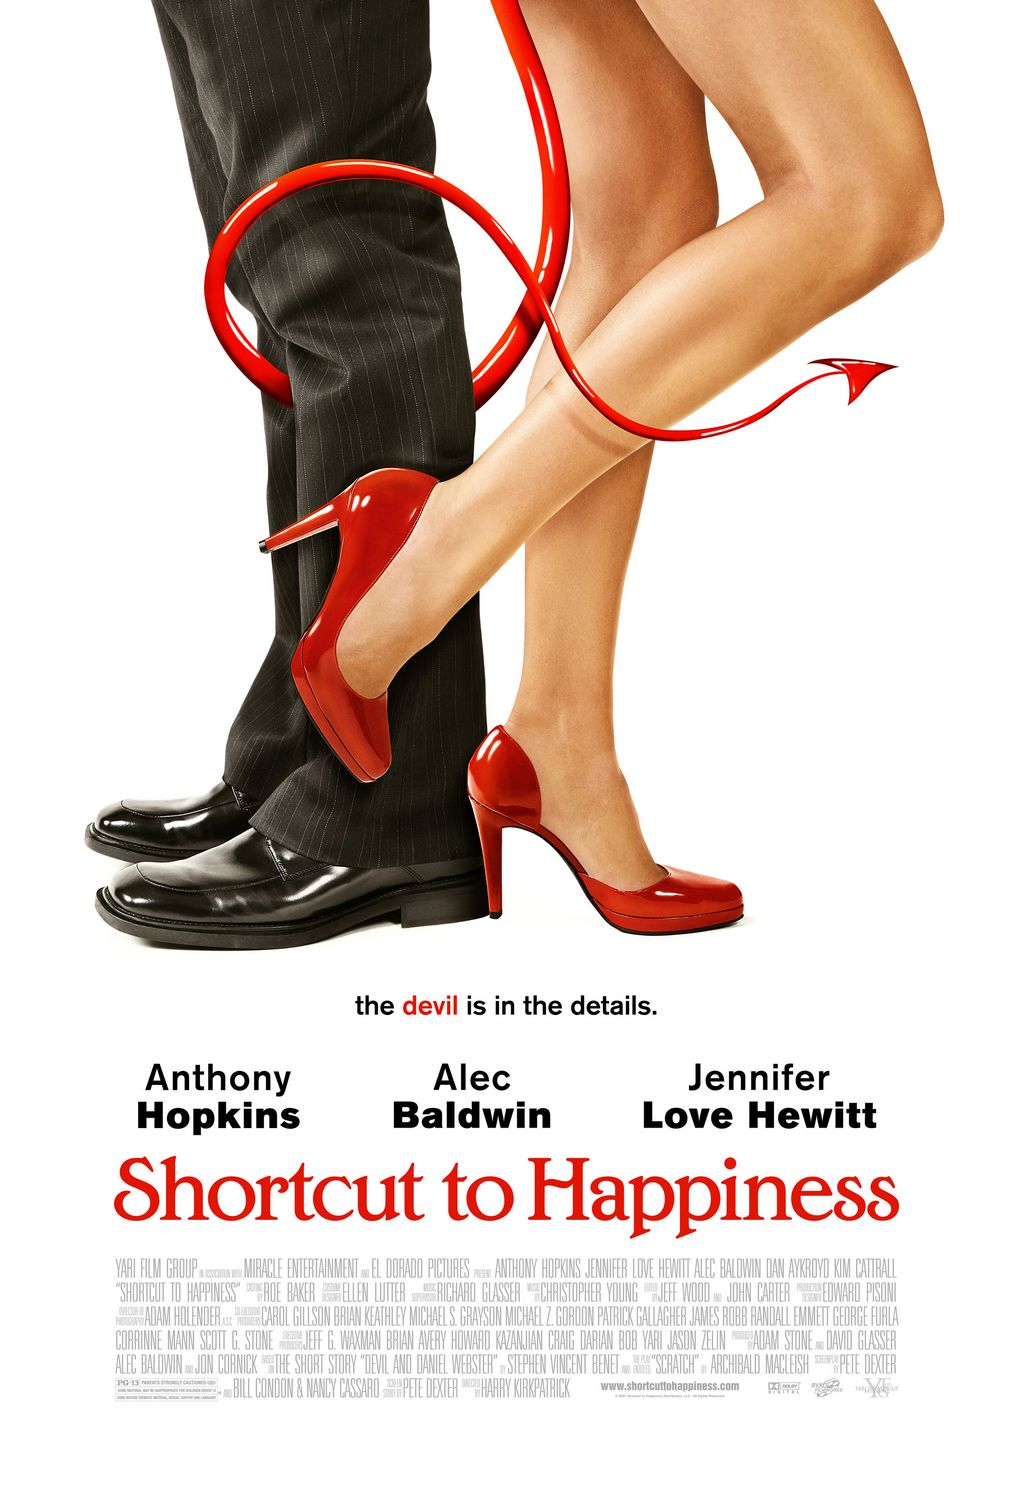 Shortcut to happiness 2004 eng subtitles - aed